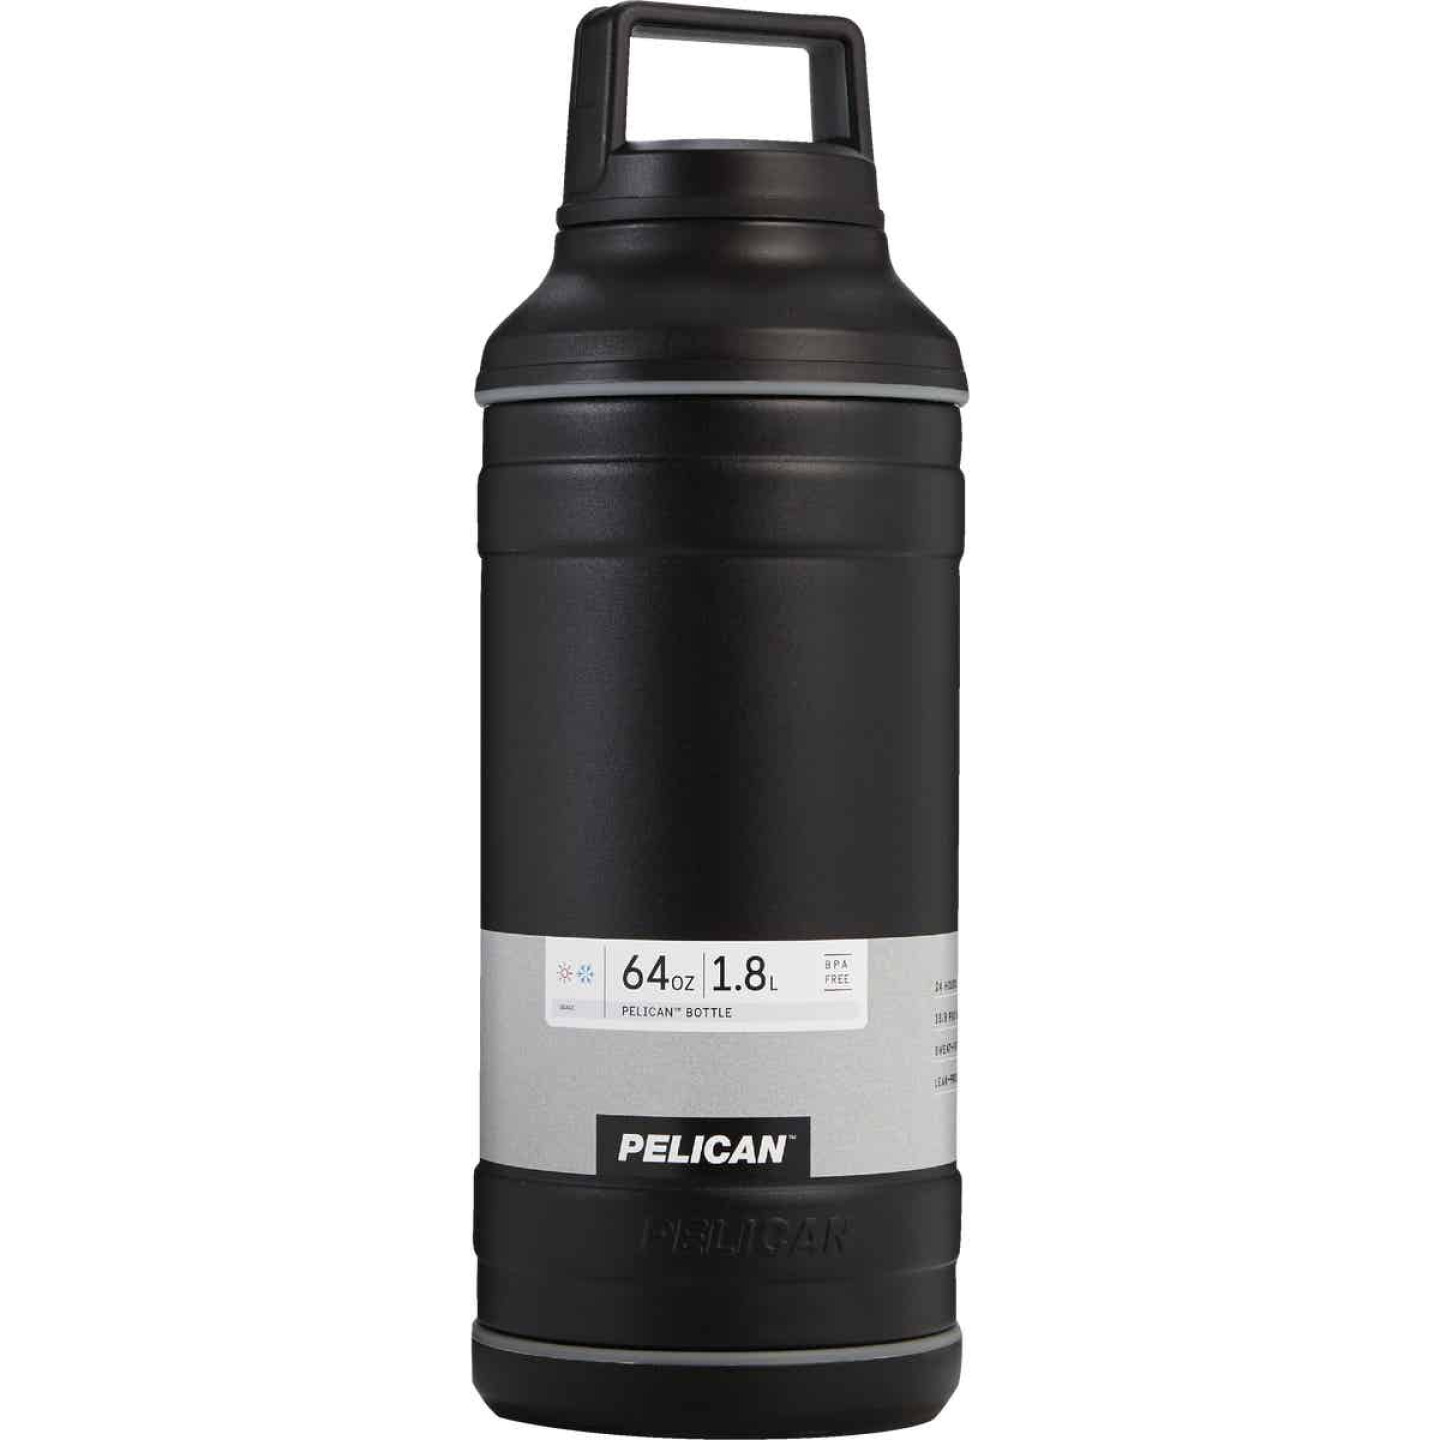 Pelican 64 Oz. Black Stainless Steel Travel Bottle Image 1